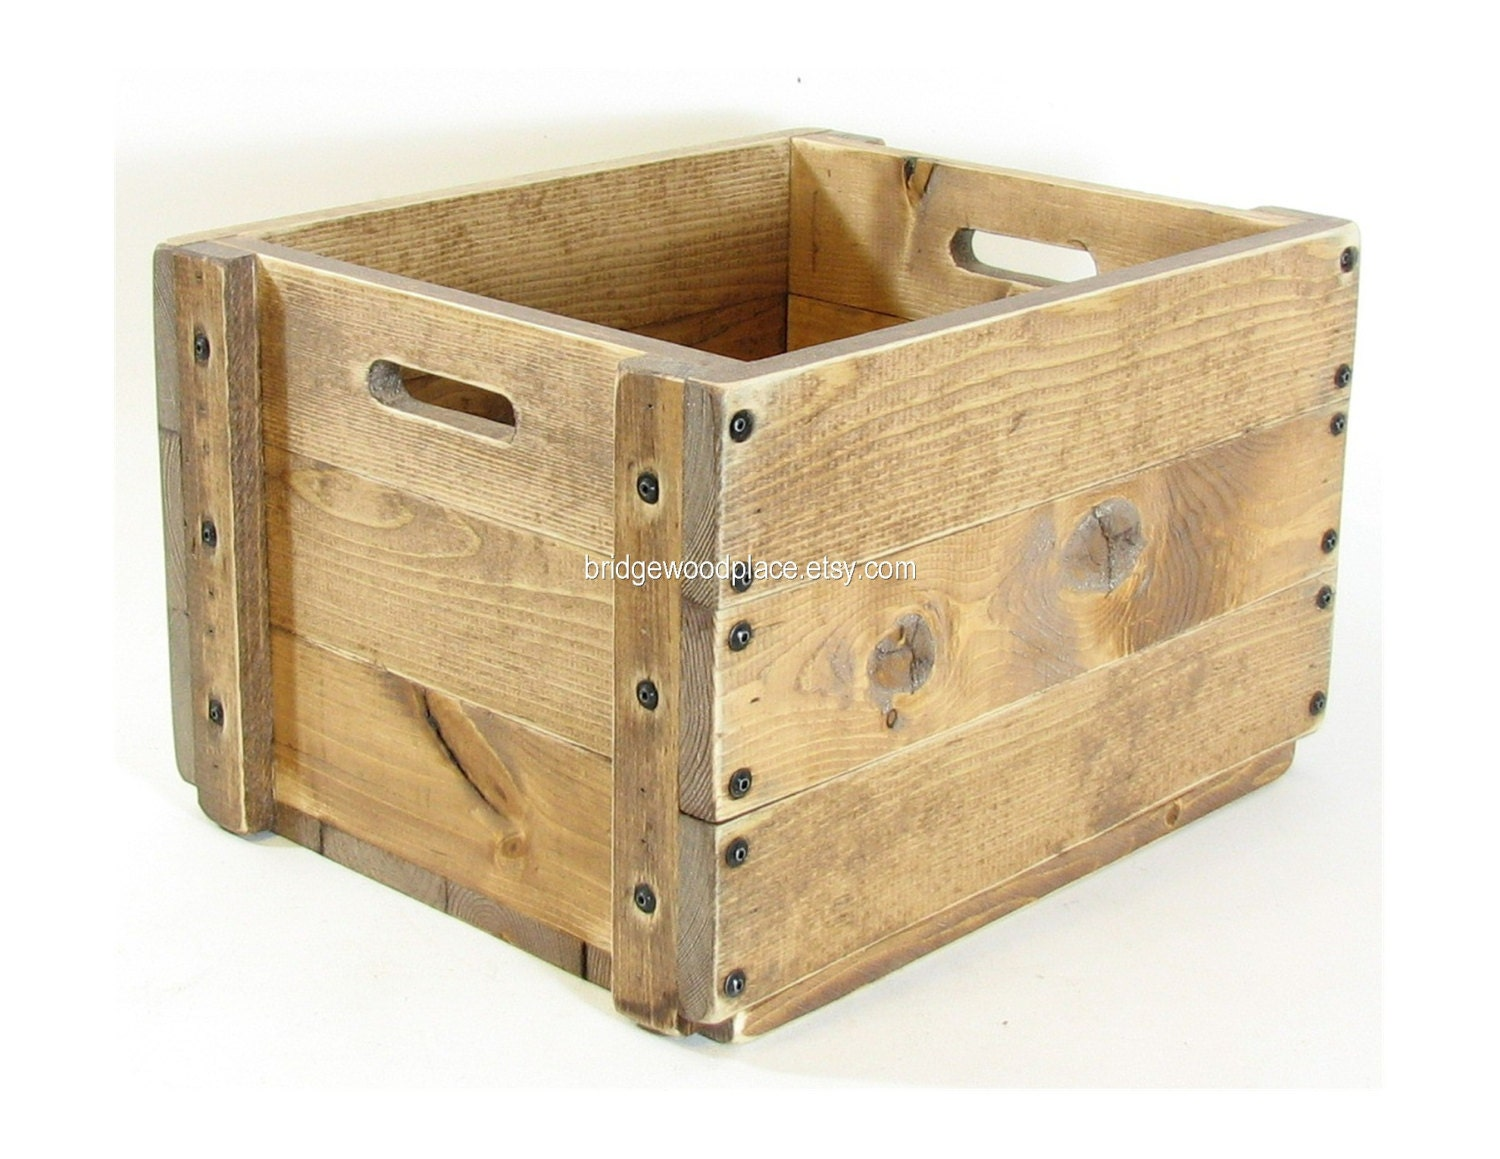 Wood Crate Wooden Box Wood Tote Wooden Carryall By Bridgewoodplace